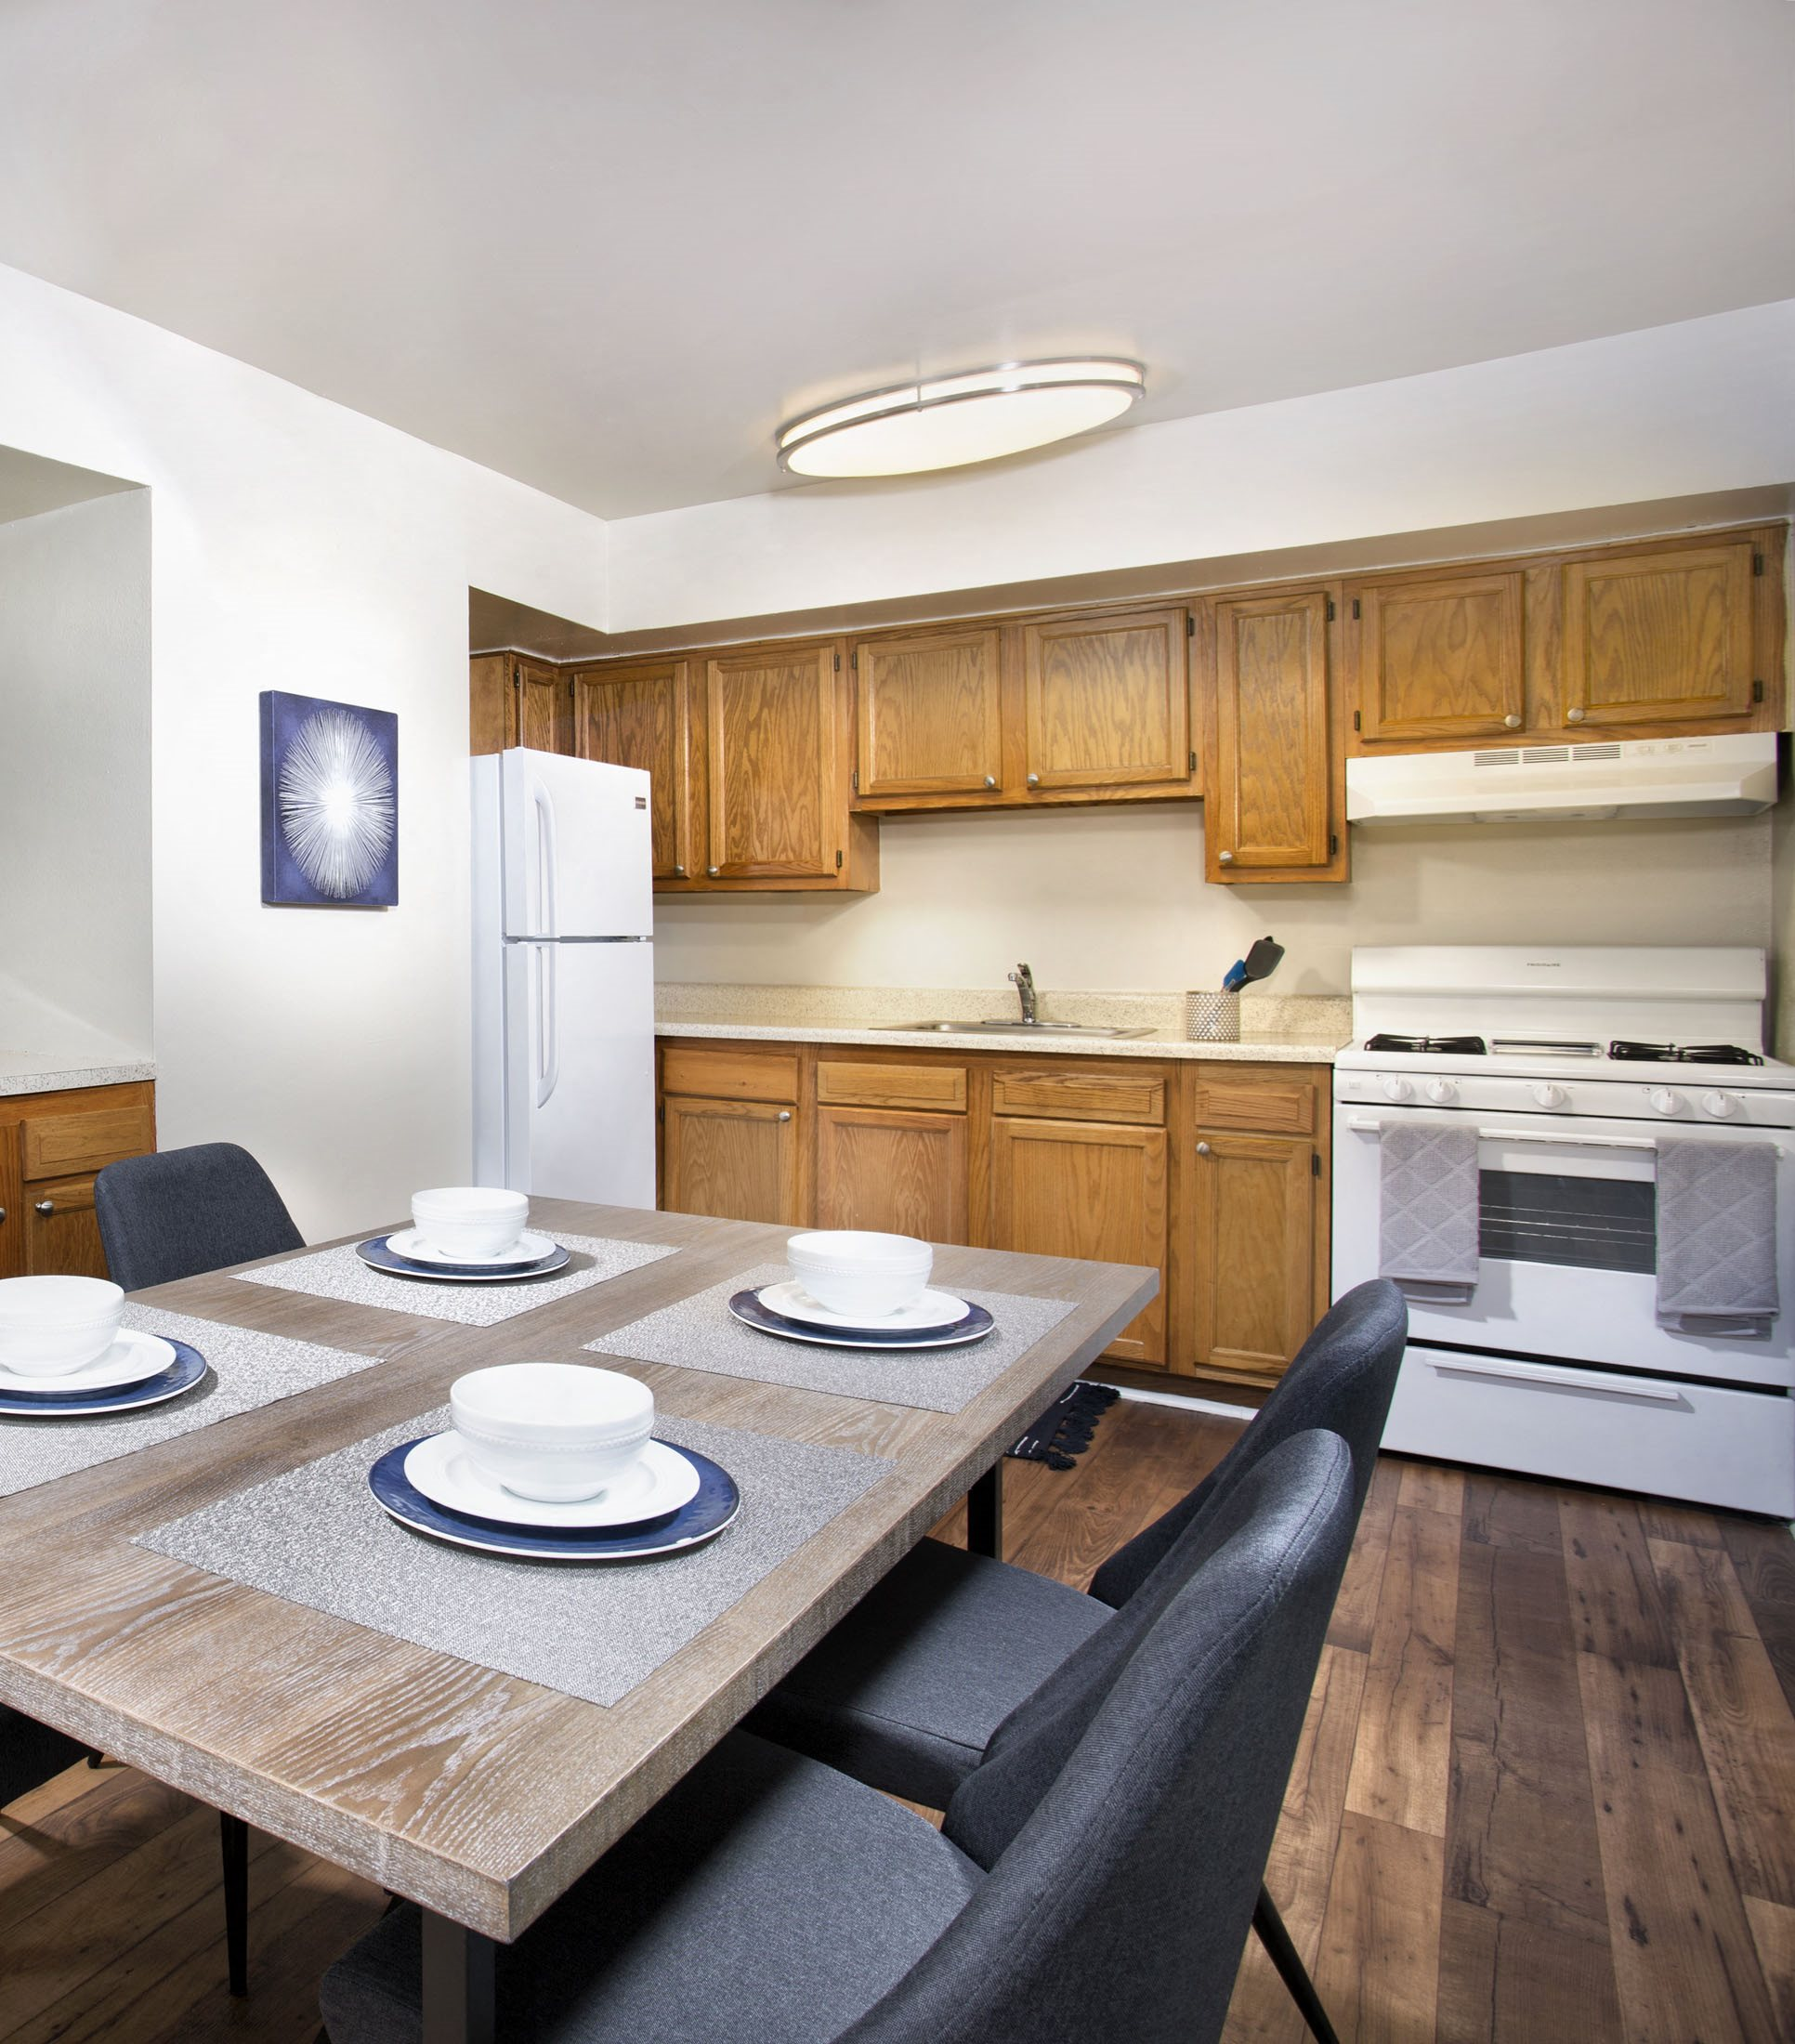 kitchen at Oaks at Park South apartments in Oxon Hill with plan flooring, white appliances, brown wood cabinets and dining table with four place settings